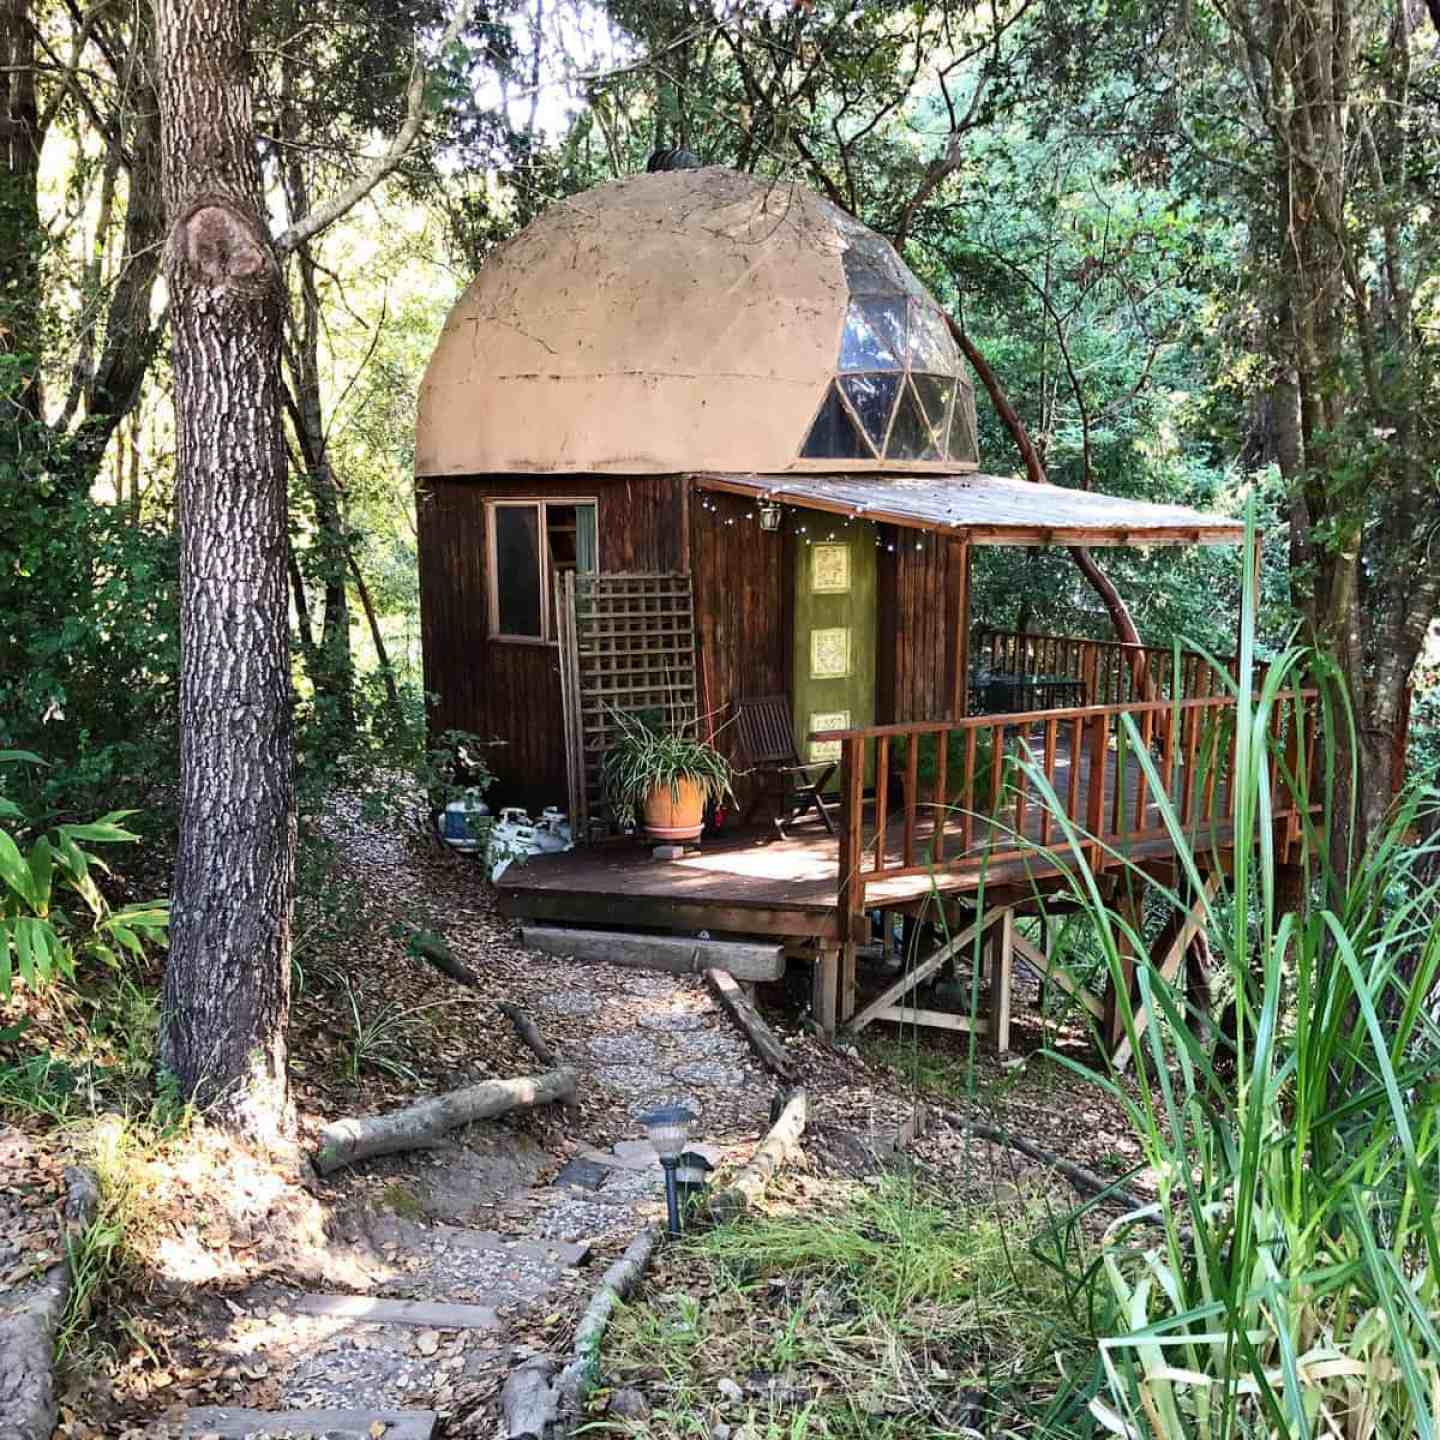 Babymoon in Aptos California at the Mushroom Dome Cabin